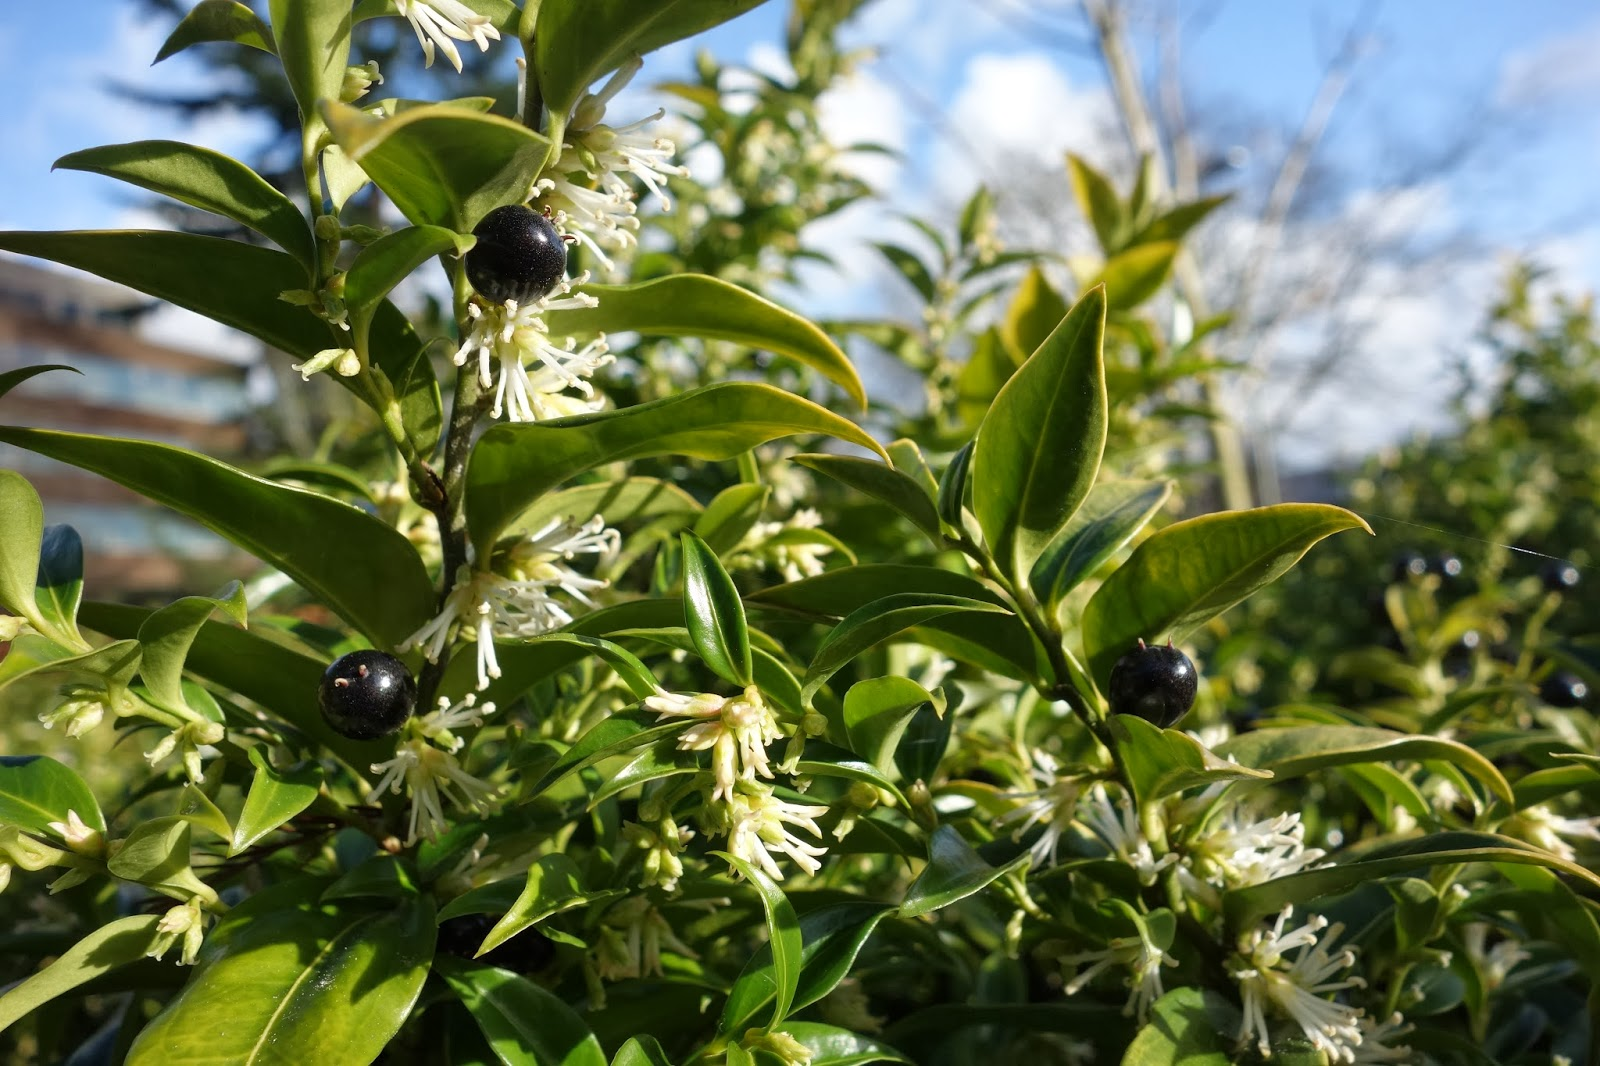 Flower bushes that bloom in winter -  Green Leaves And Inconspicuous White Very Sweetly Scented Flowers In January And February Grow In Humus Rich Well Drained Soil In Part Shade Or Shade